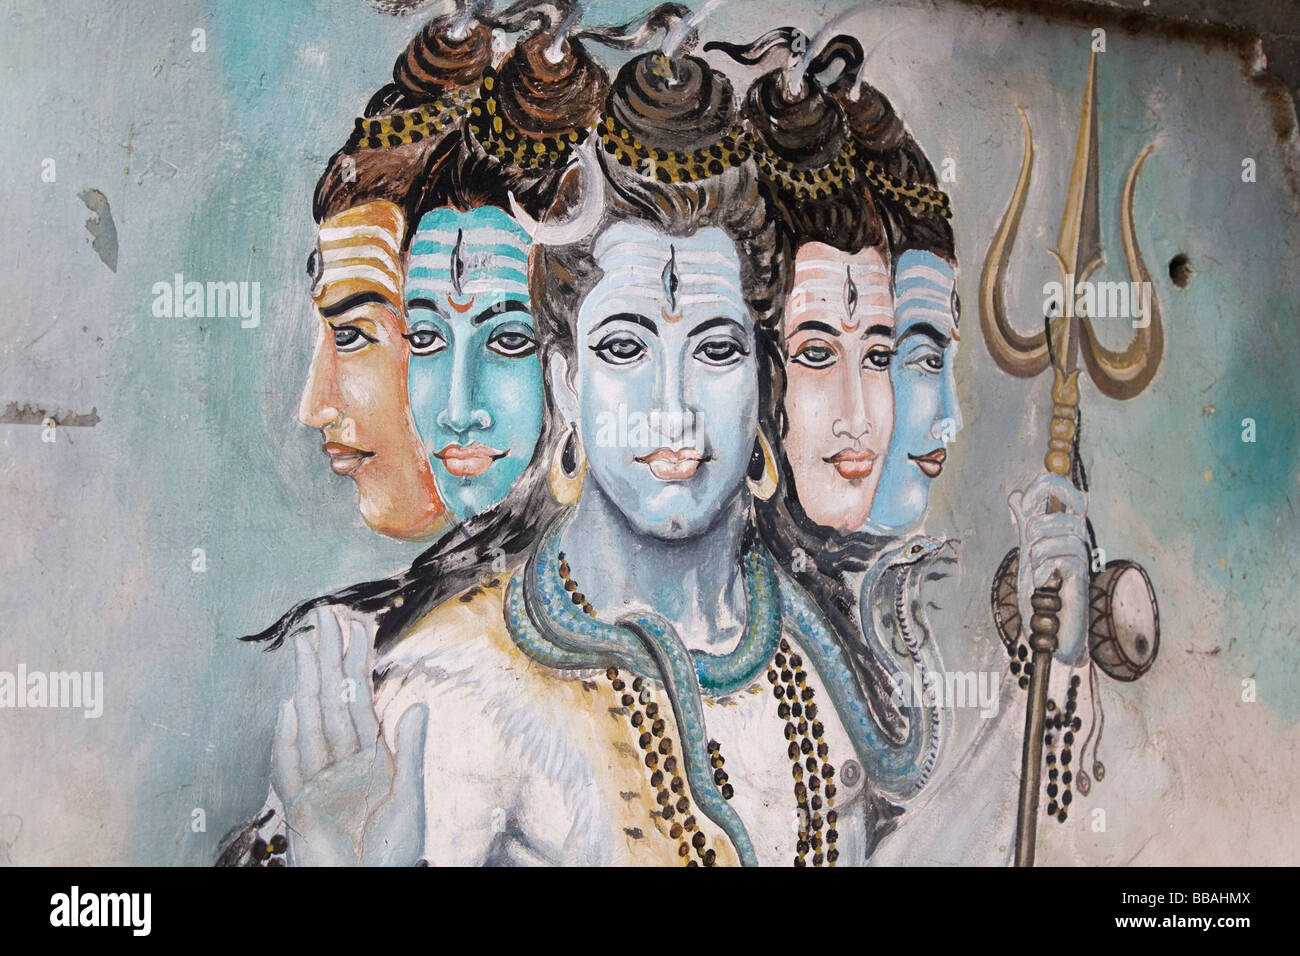 Shiva carrying a trident is painted onto a wall in Chennai, India. - Stock Image